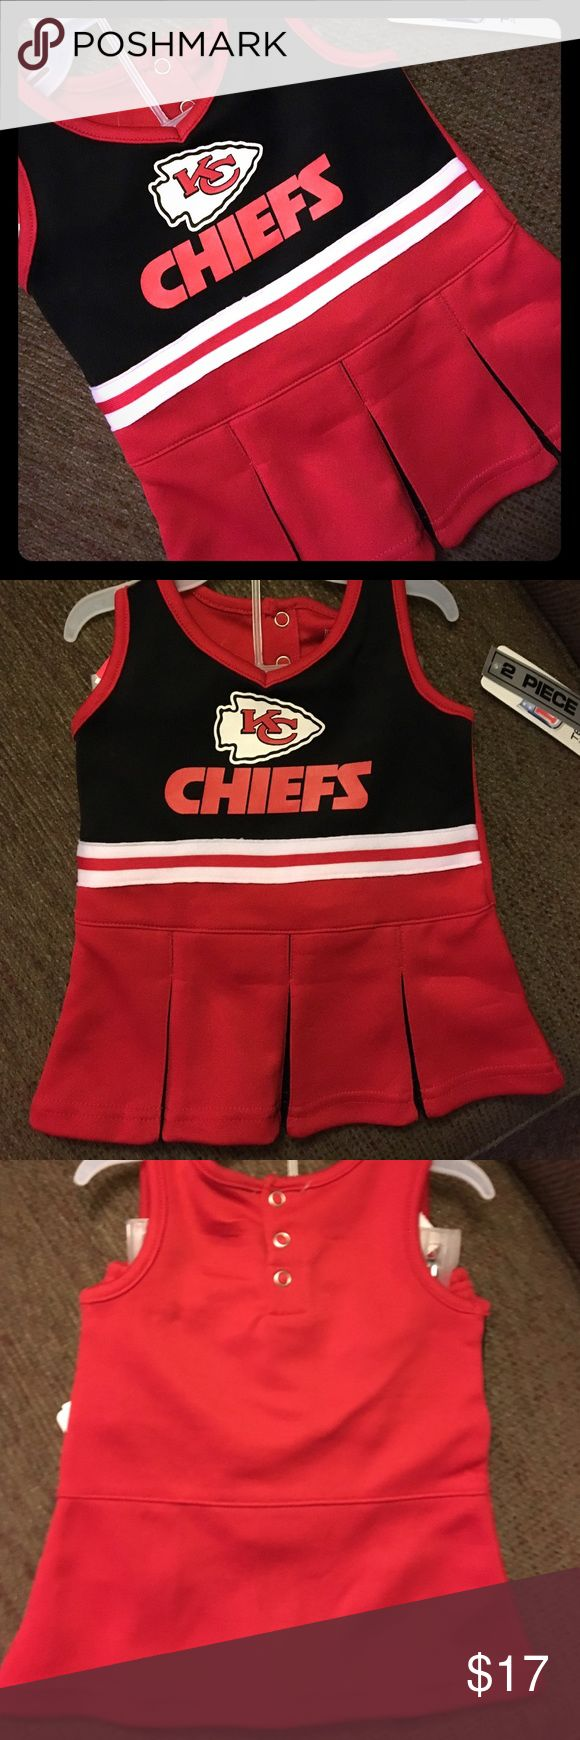 🏈NWT NFL Kansas City Chiefs 2-pc Set Sz 0-3M🏈 GO CHIEFS!! Just in time for the playoffs!! Dress your little lucky charm in this adorable Officially Licensed NFL set. Would be super cute with a white or red long sleeved onesie!! 🏈Brand NEW with tags 🏈2-piece set - dress & bloomers 🏈Easy dressing snaps in the back 🏈Please feel free to ask questions... NFL Matching Sets